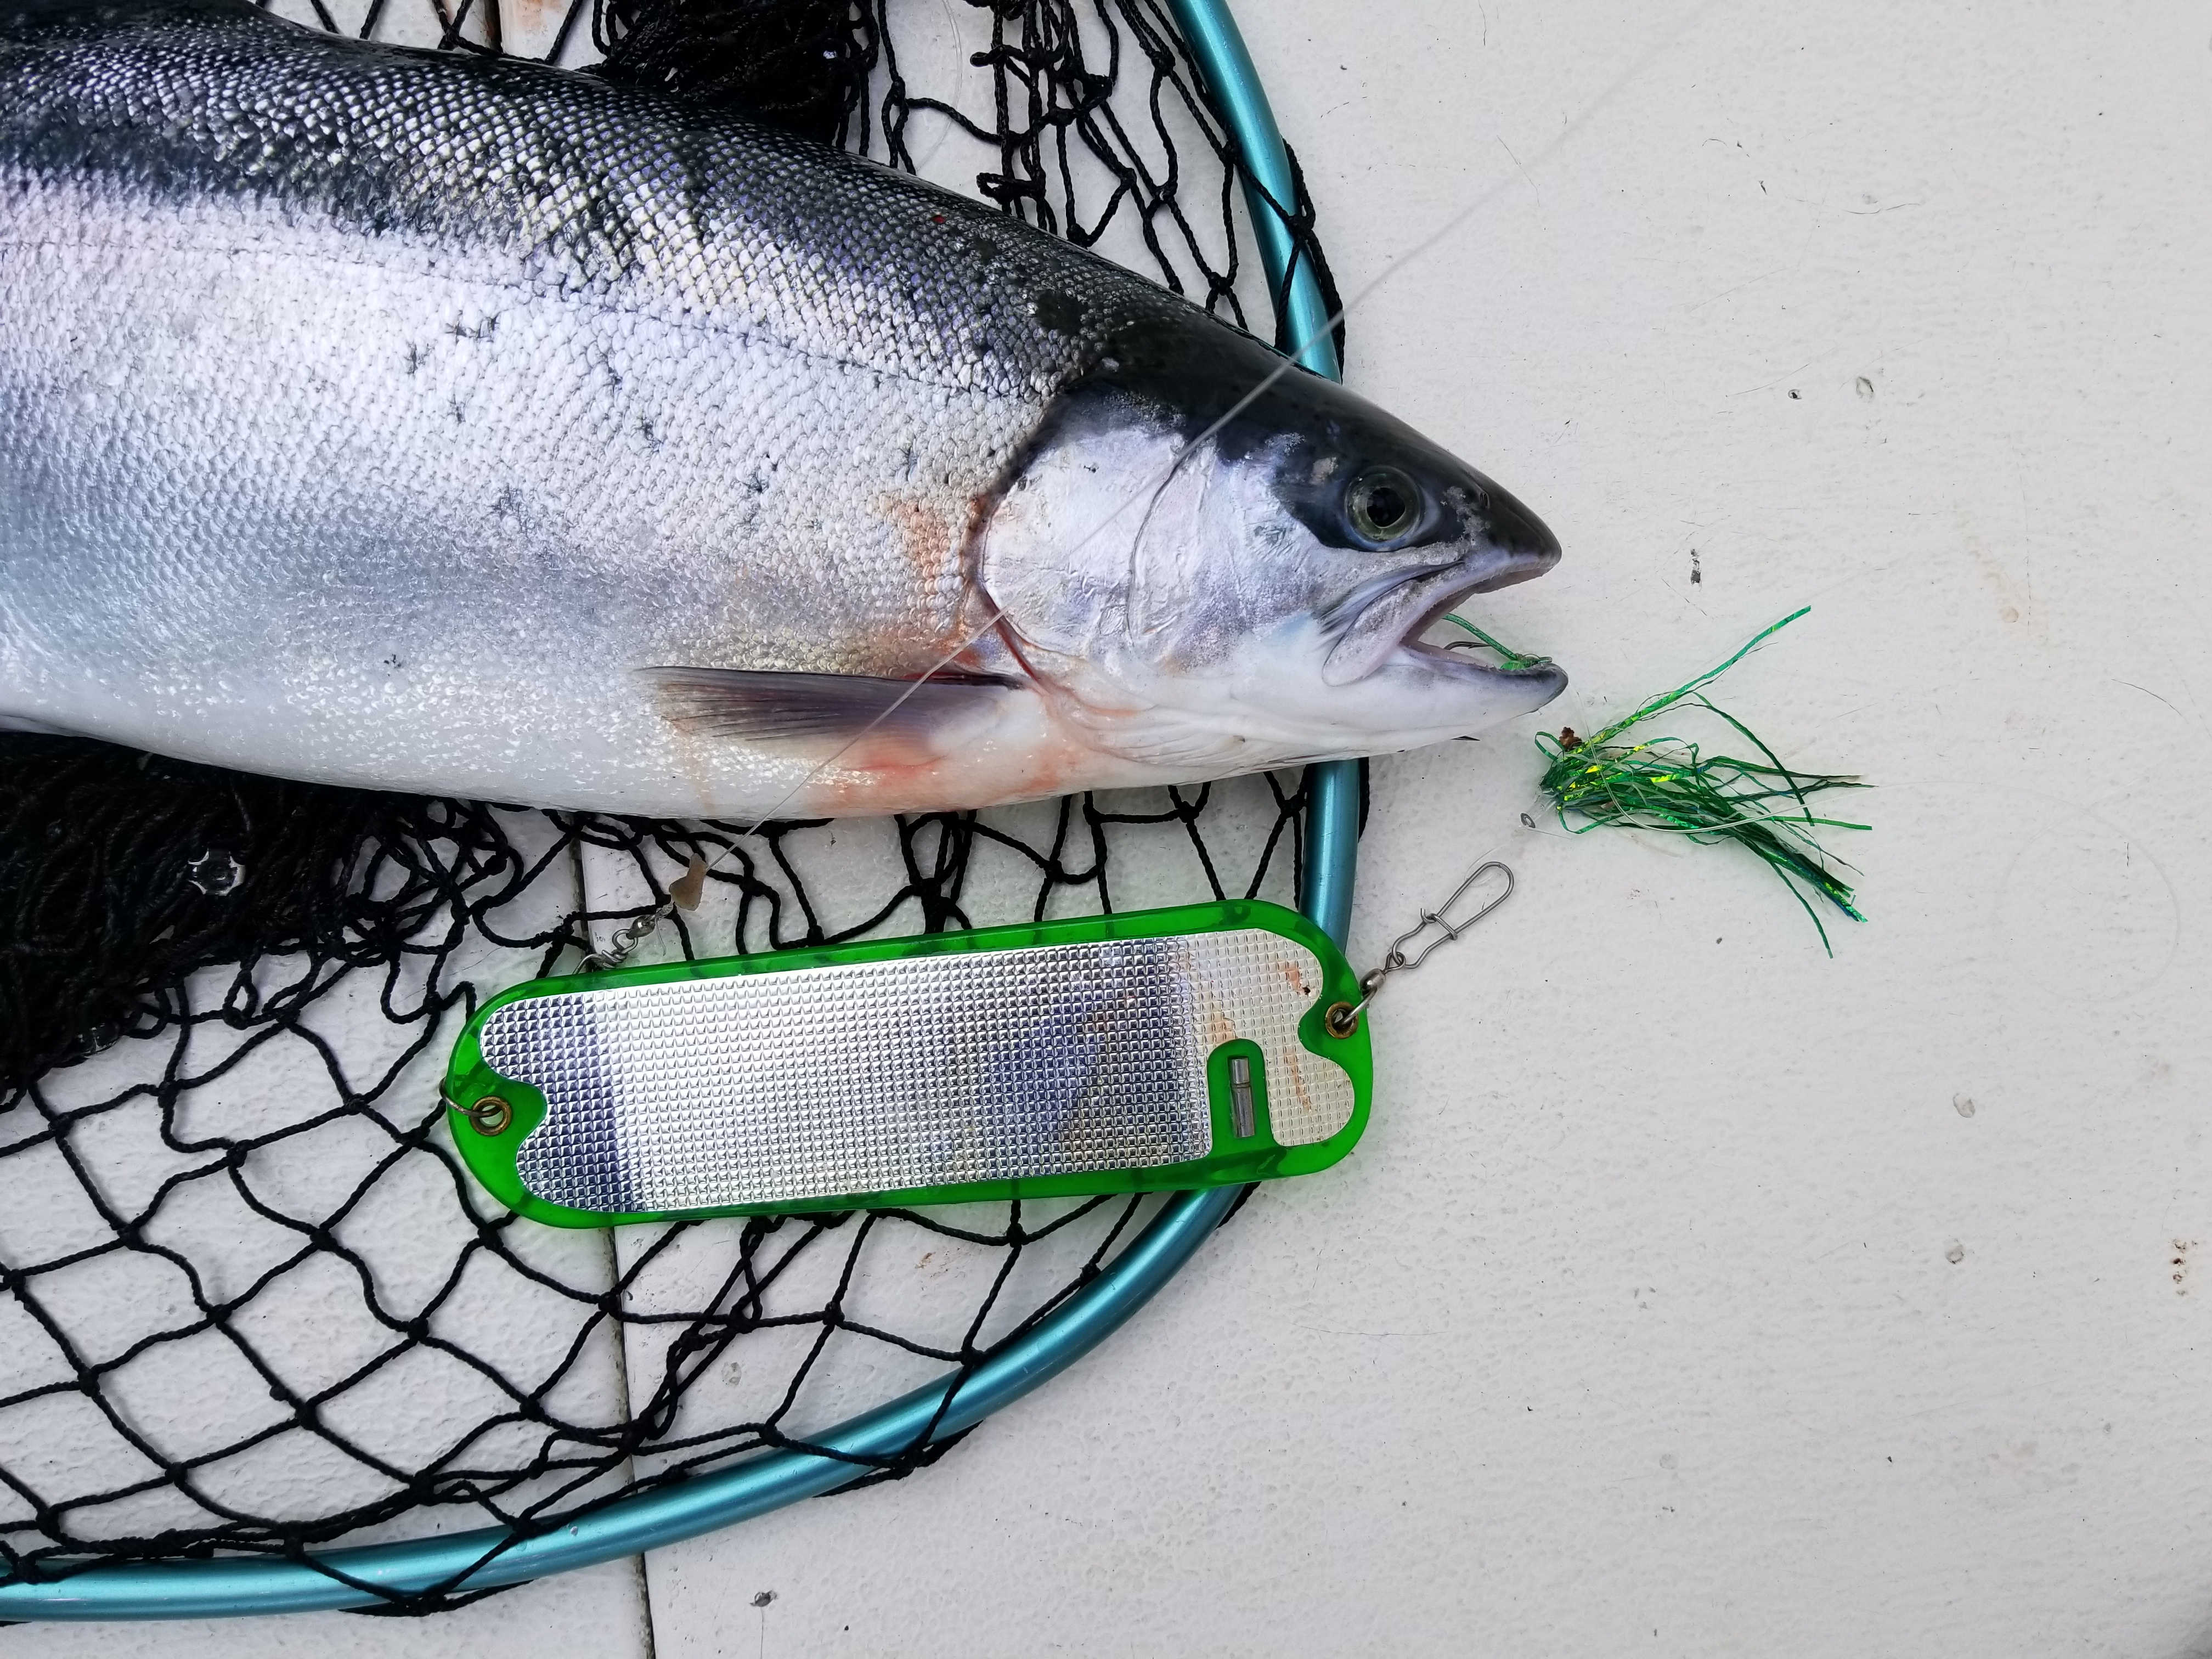 Lake Ontario Salmon Fishing Tips | Fish Doctor Charters - Part 2